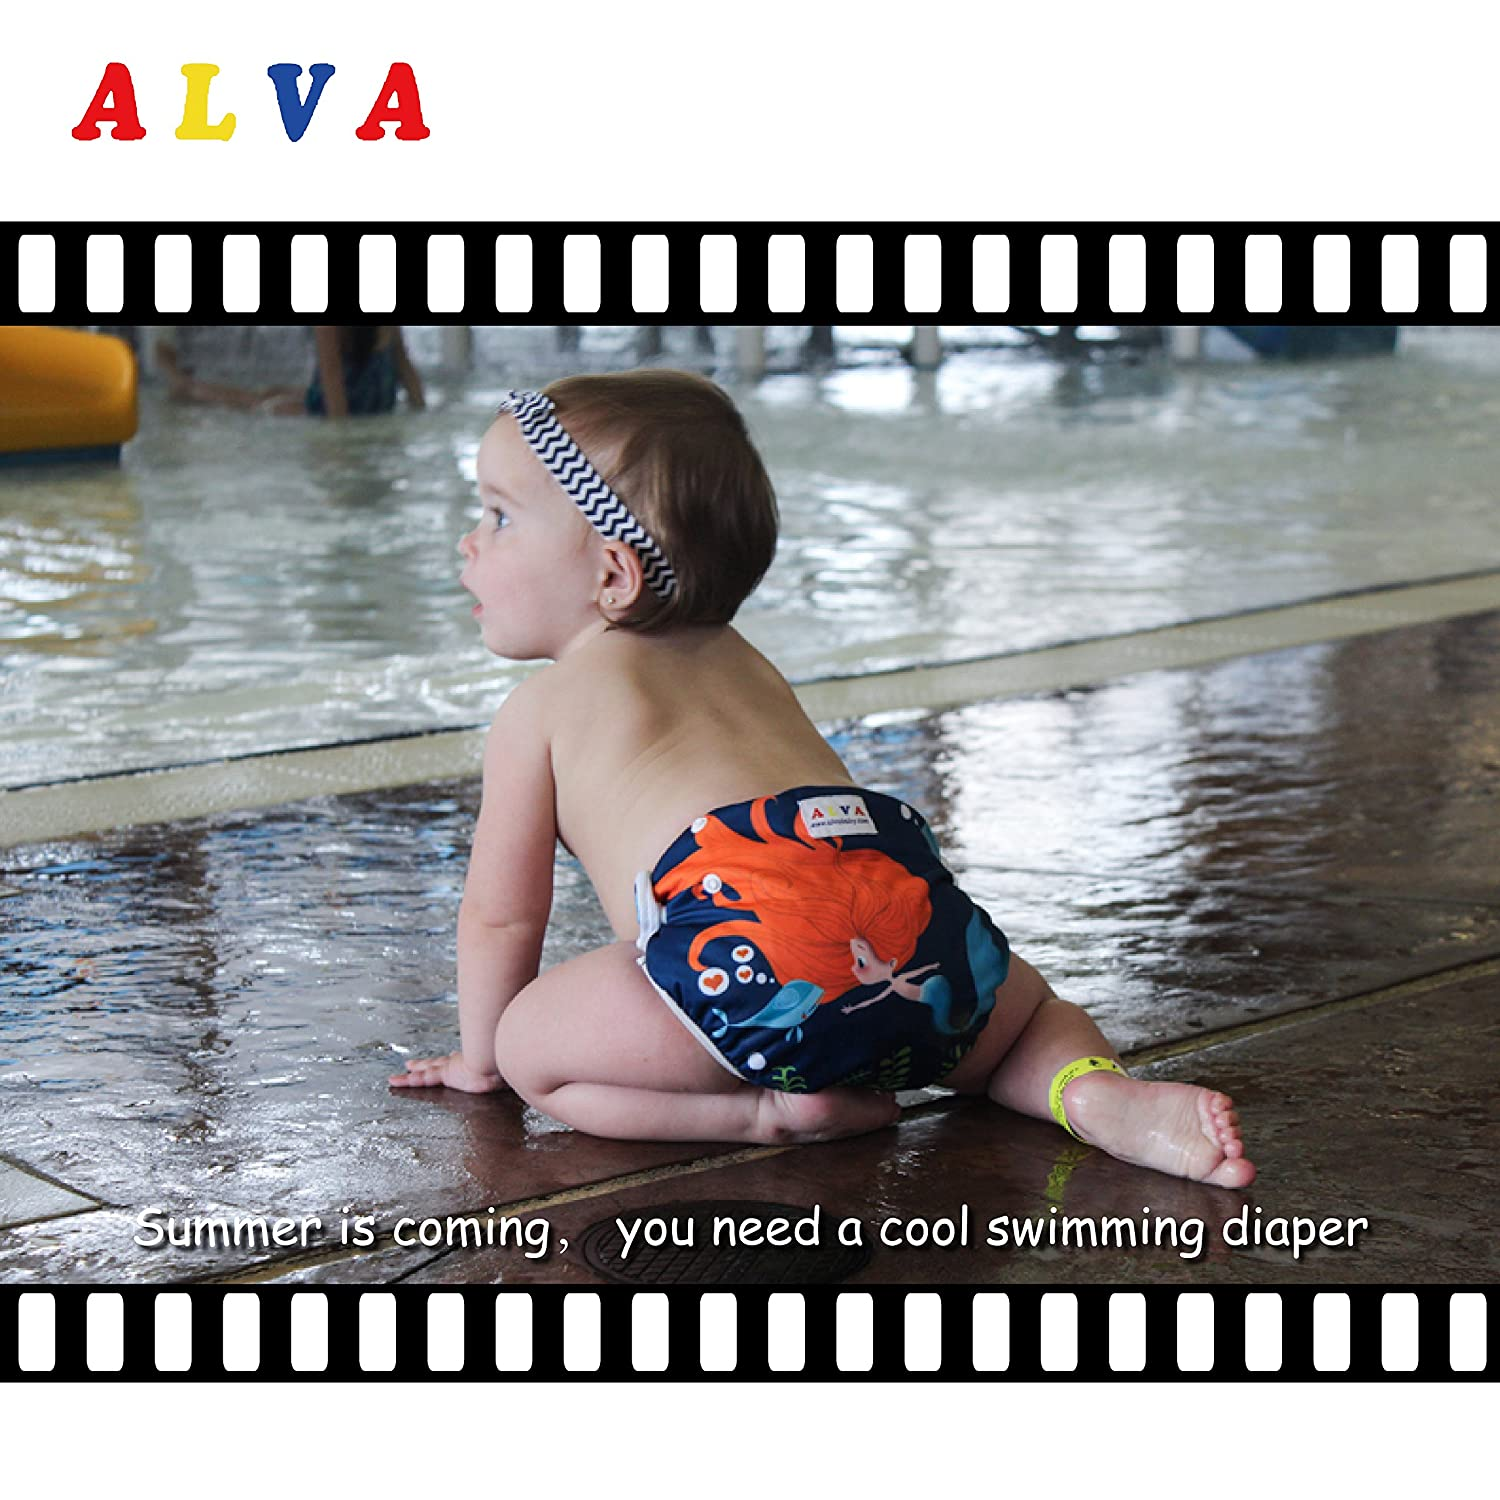 Alva Baby 2pcs Pack One Size Reuseable Washable Printed and Positioning Swim Diapers SWD25-26-CA Alvababy